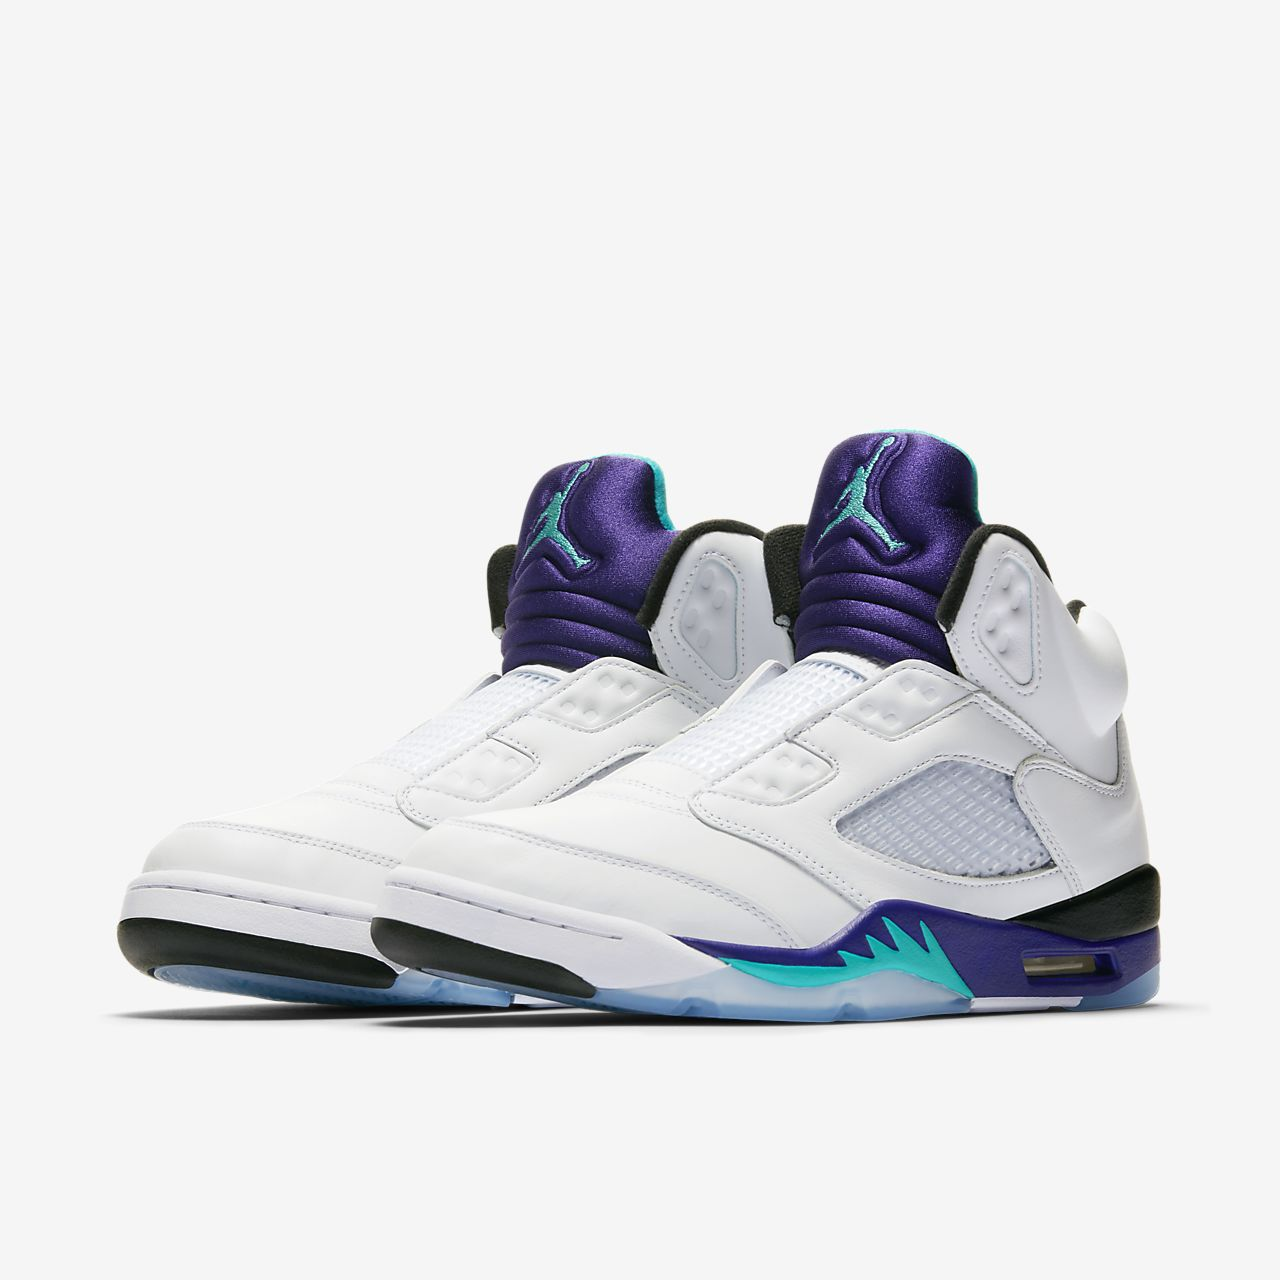 new arrival 6033e 59dbd ... Air Jordan 5 Retro Men s Shoe